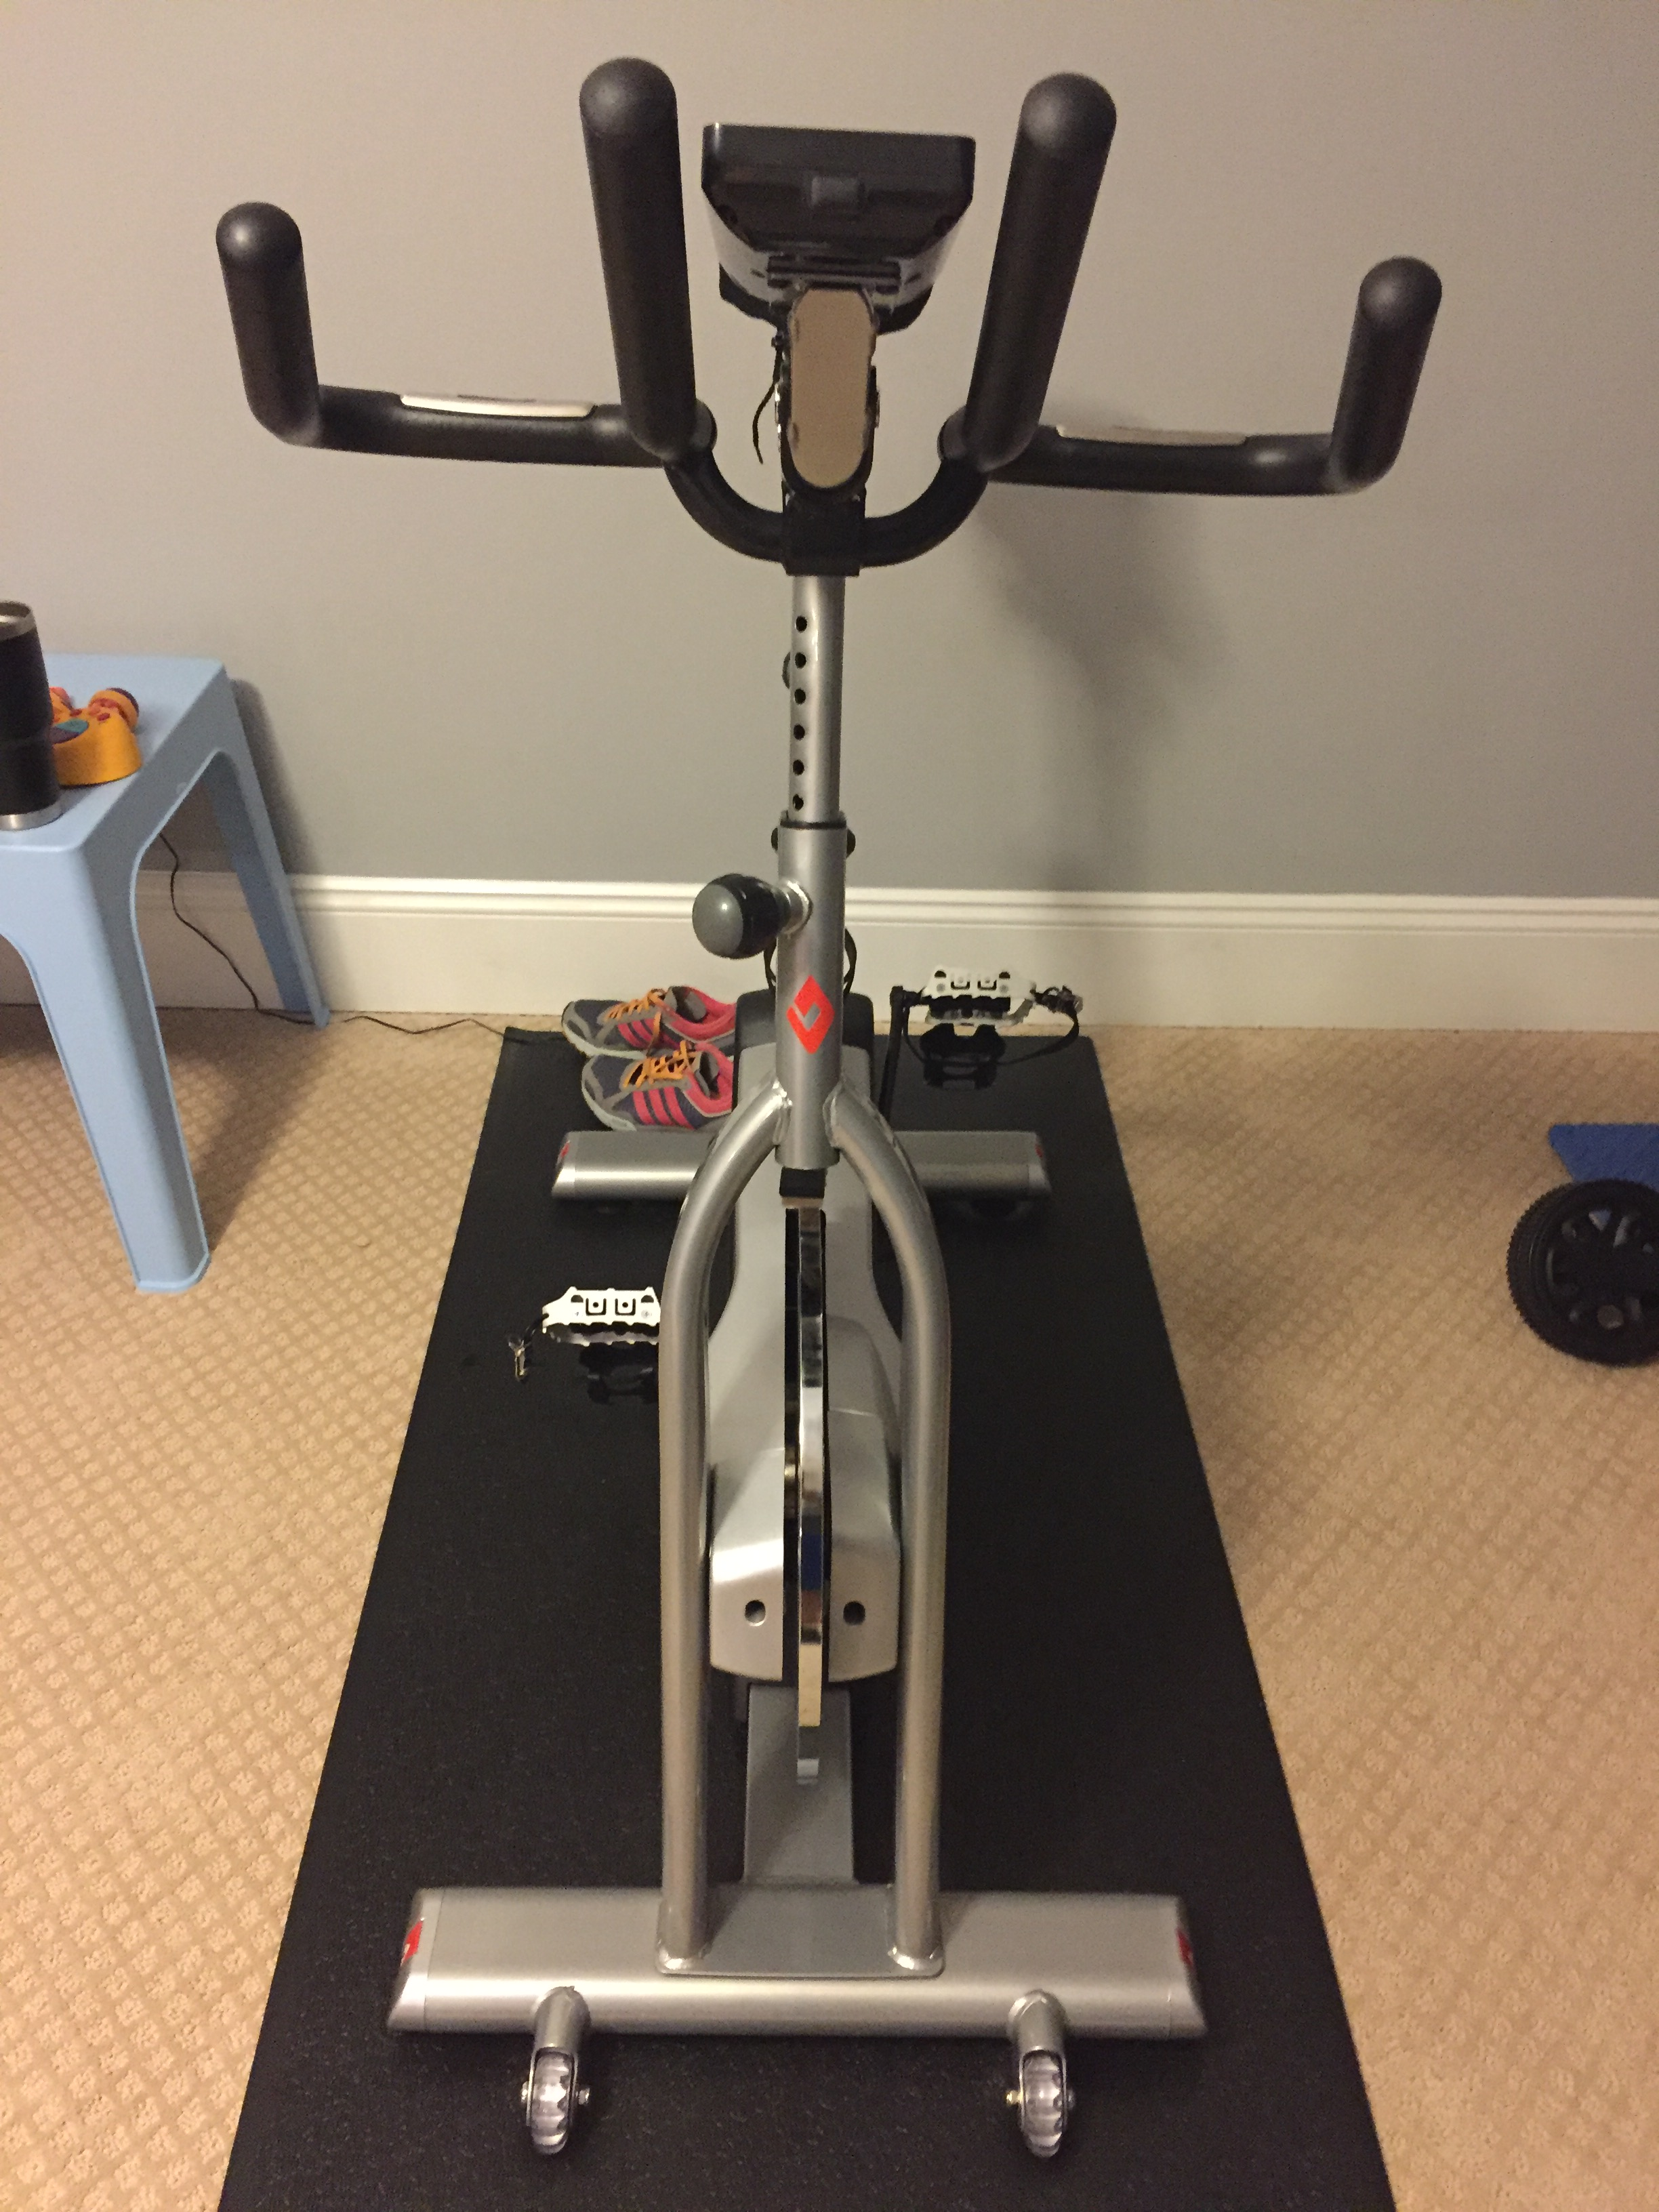 diamondback 510Ic exercise bike